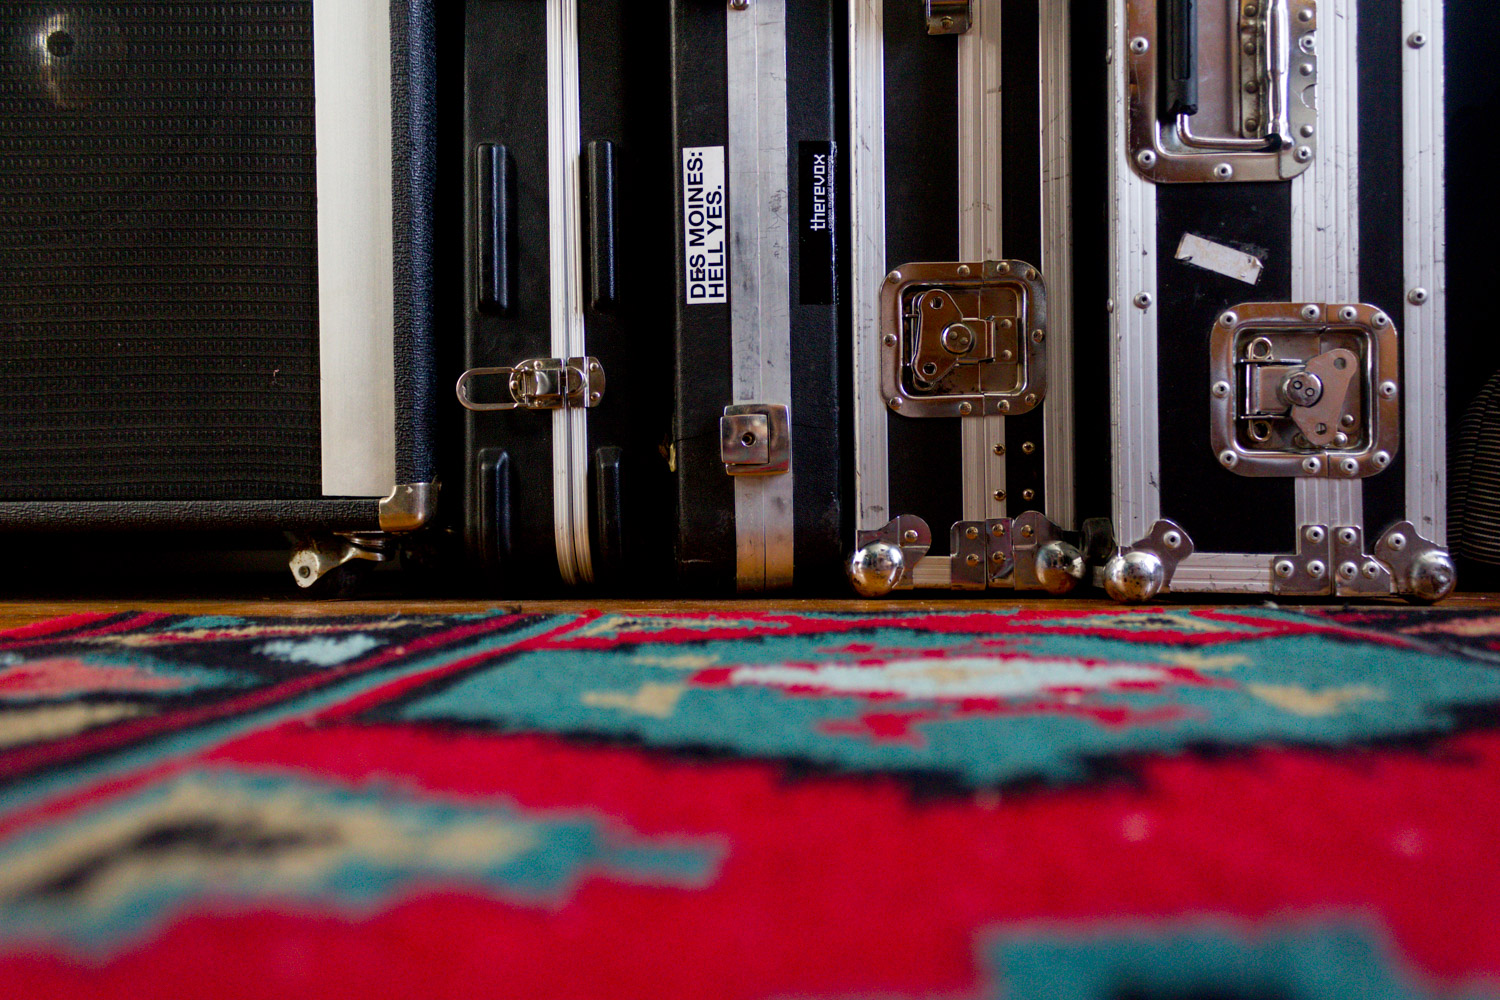 Copy of In-home music studio, vintage rug and road cases